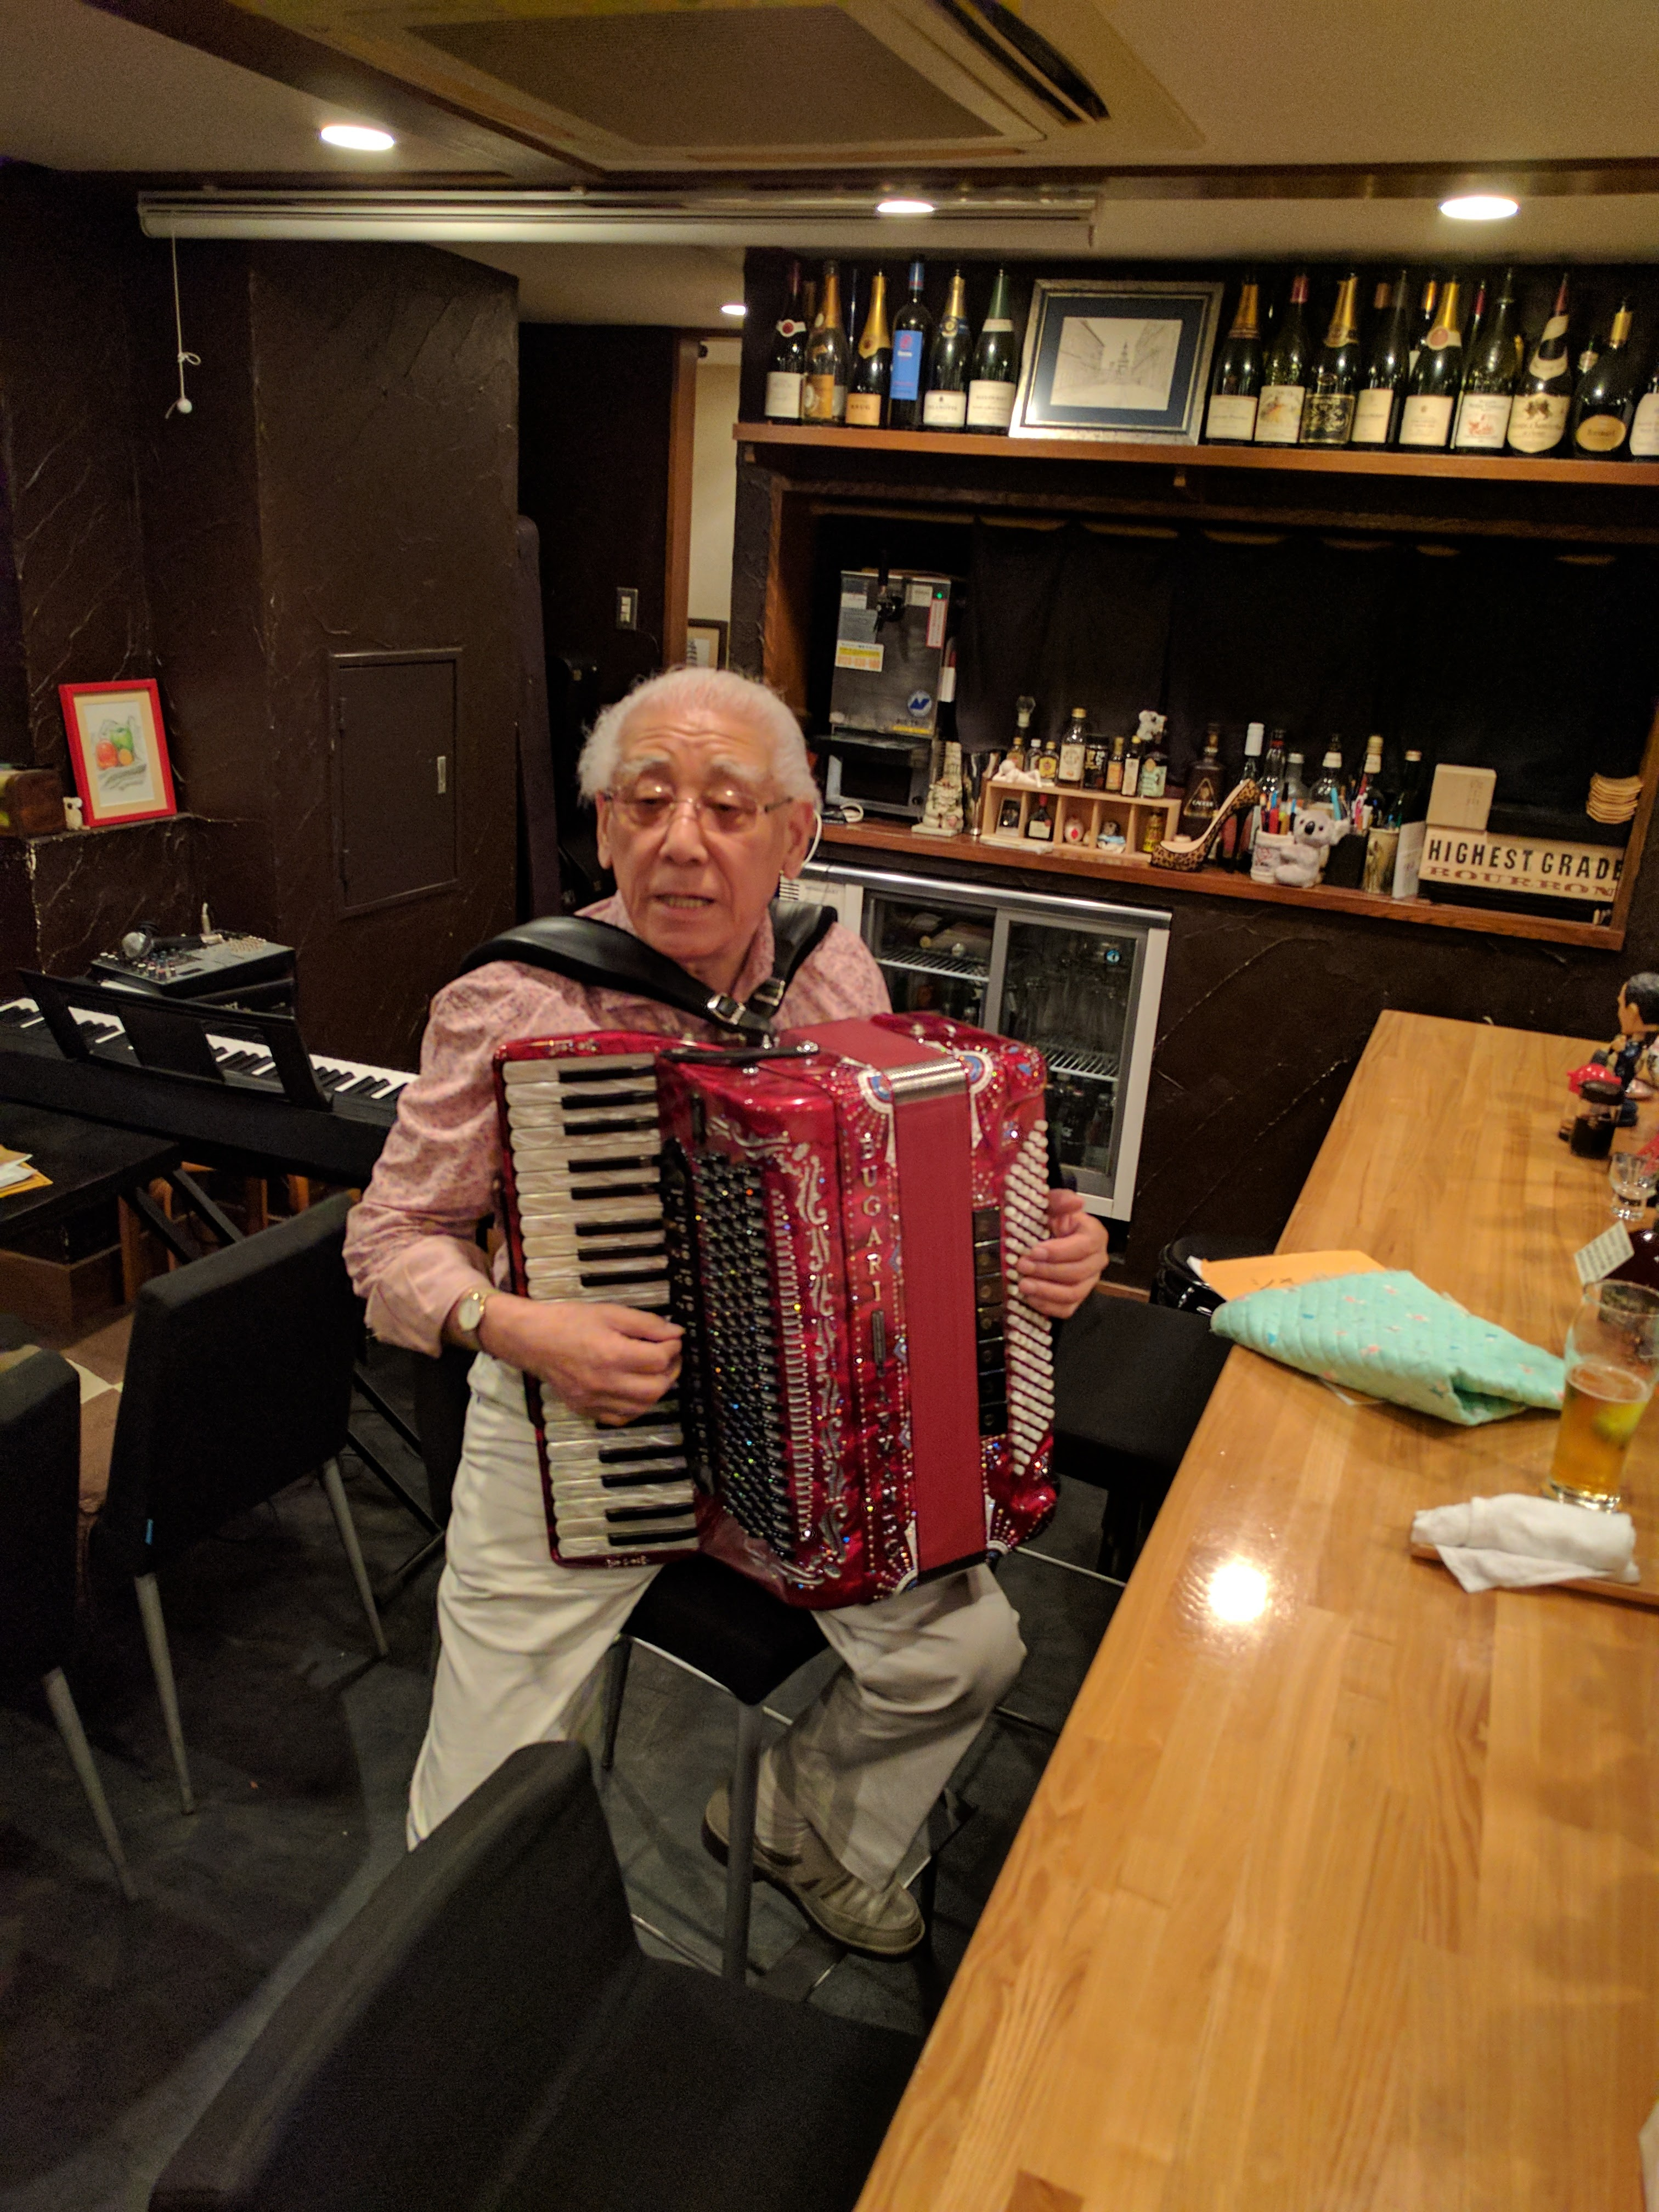 Japanese accordeon player